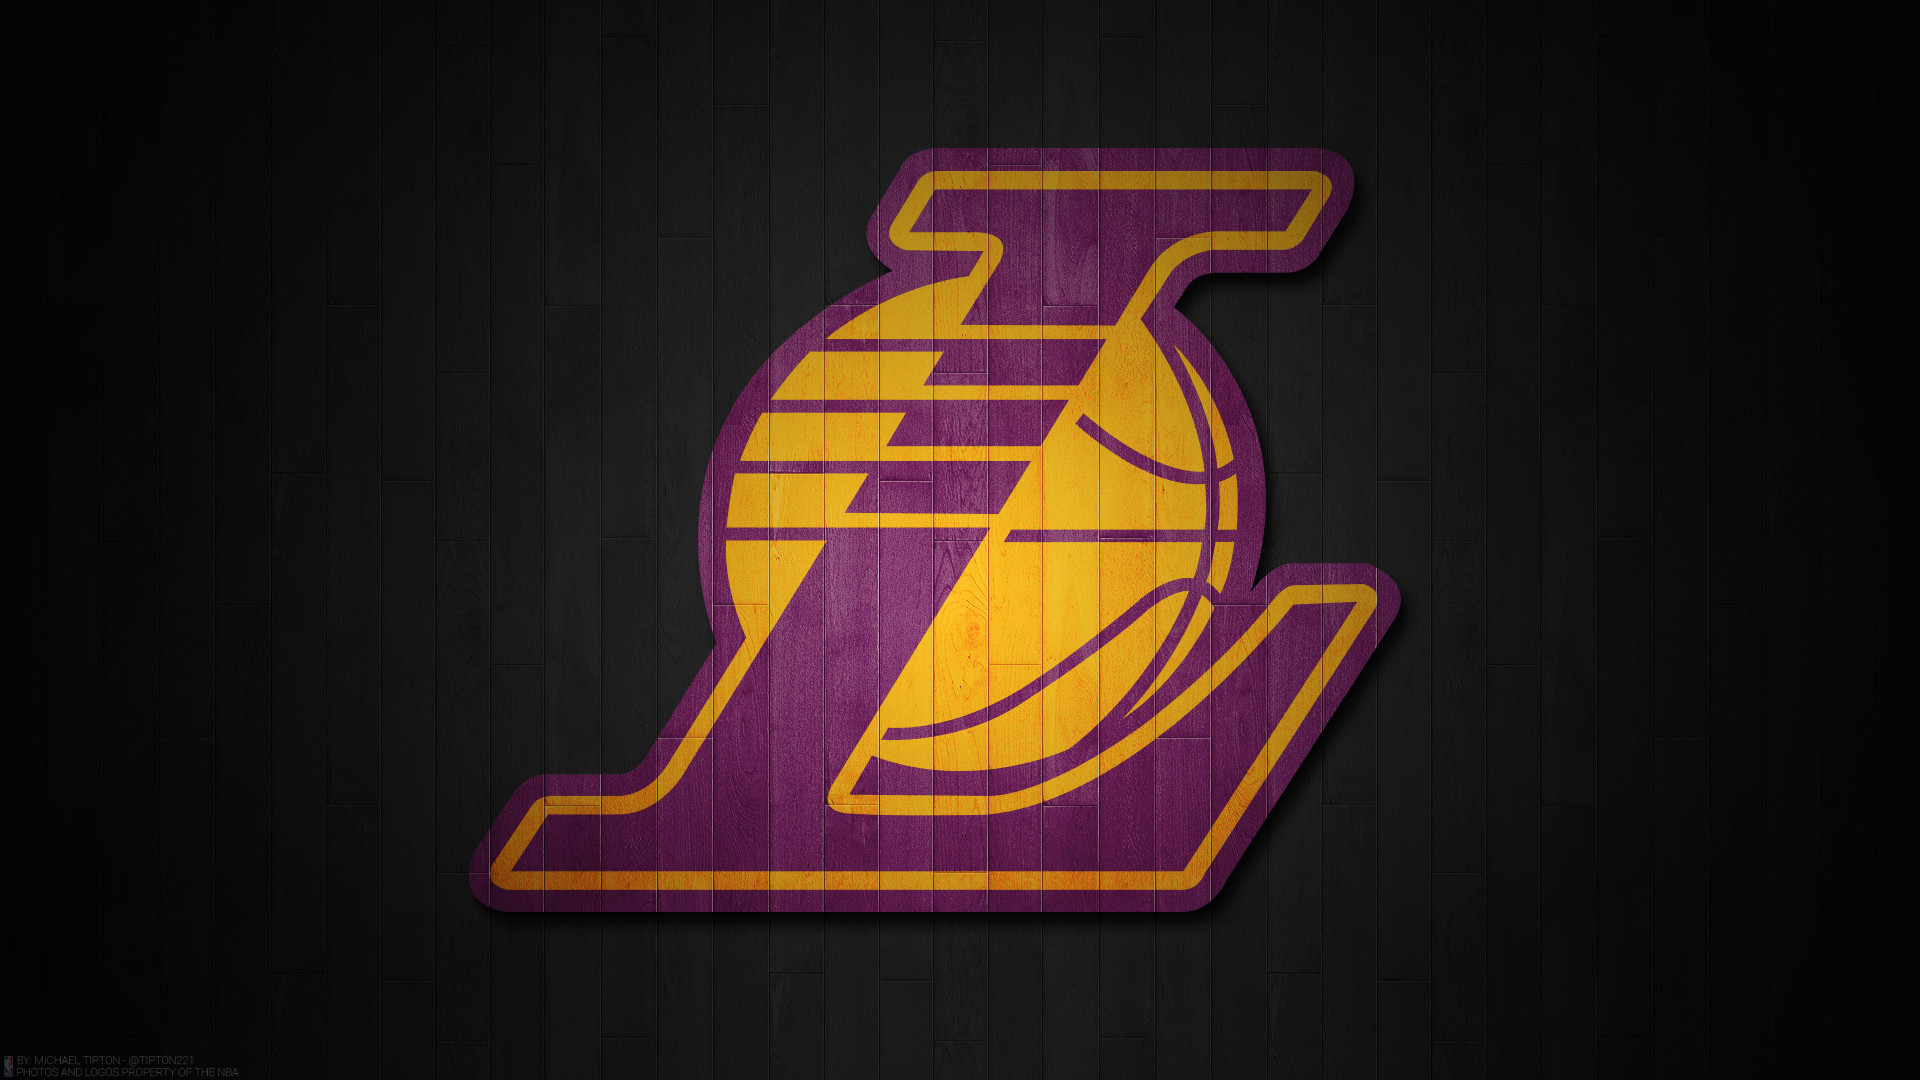 Lakers logo wallpaper 71 images 1920x1080 los angeles lakers 2017 nba basketball hardwood logo wallpaper free pc desktop voltagebd Images